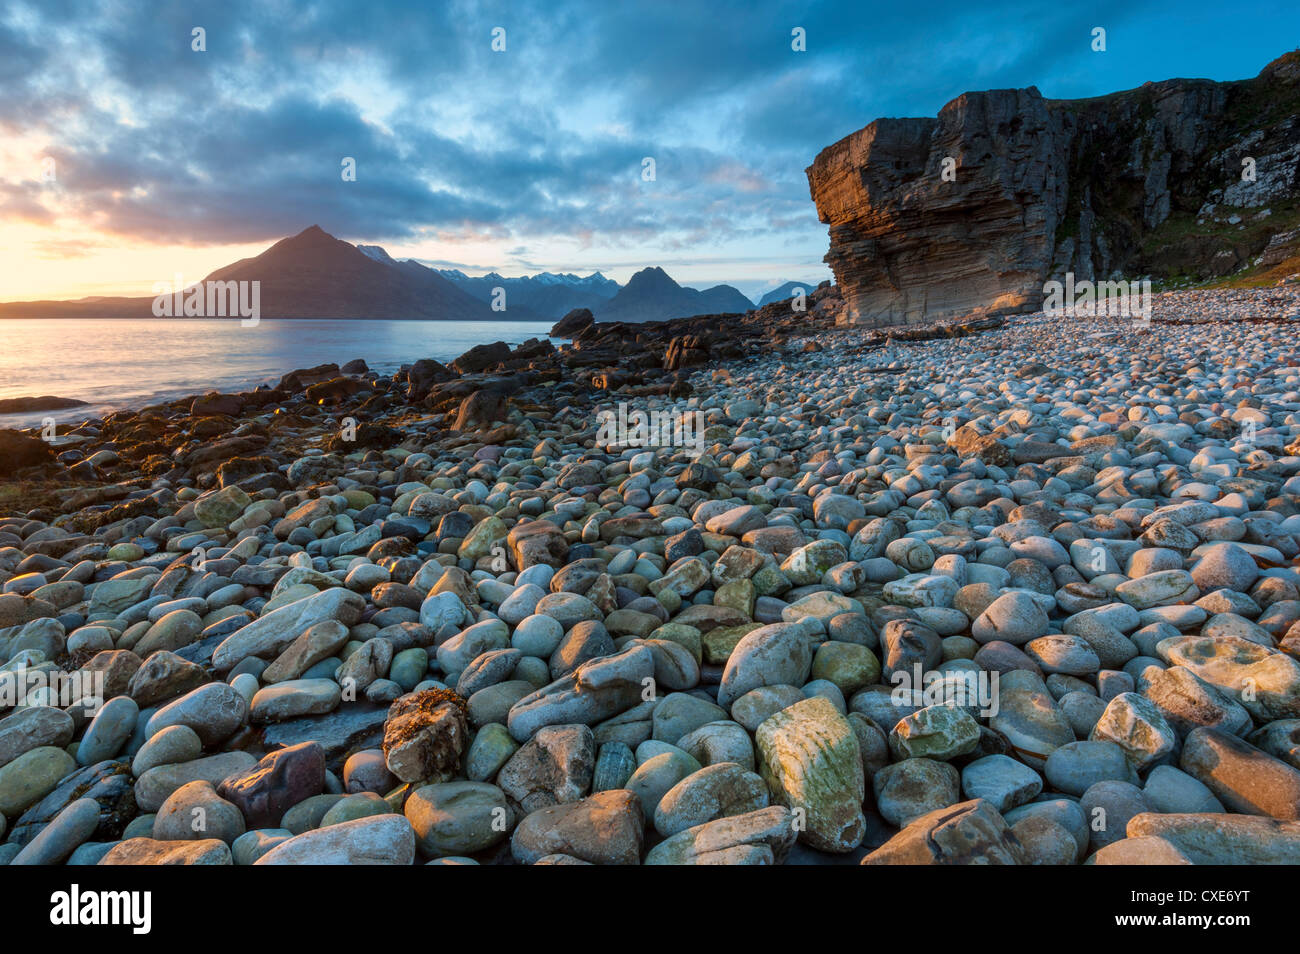 Sunset at Elgol Beach on Loch Scavaig, Cuillin Mountains, Isle of Skye, Scotland - Stock Image